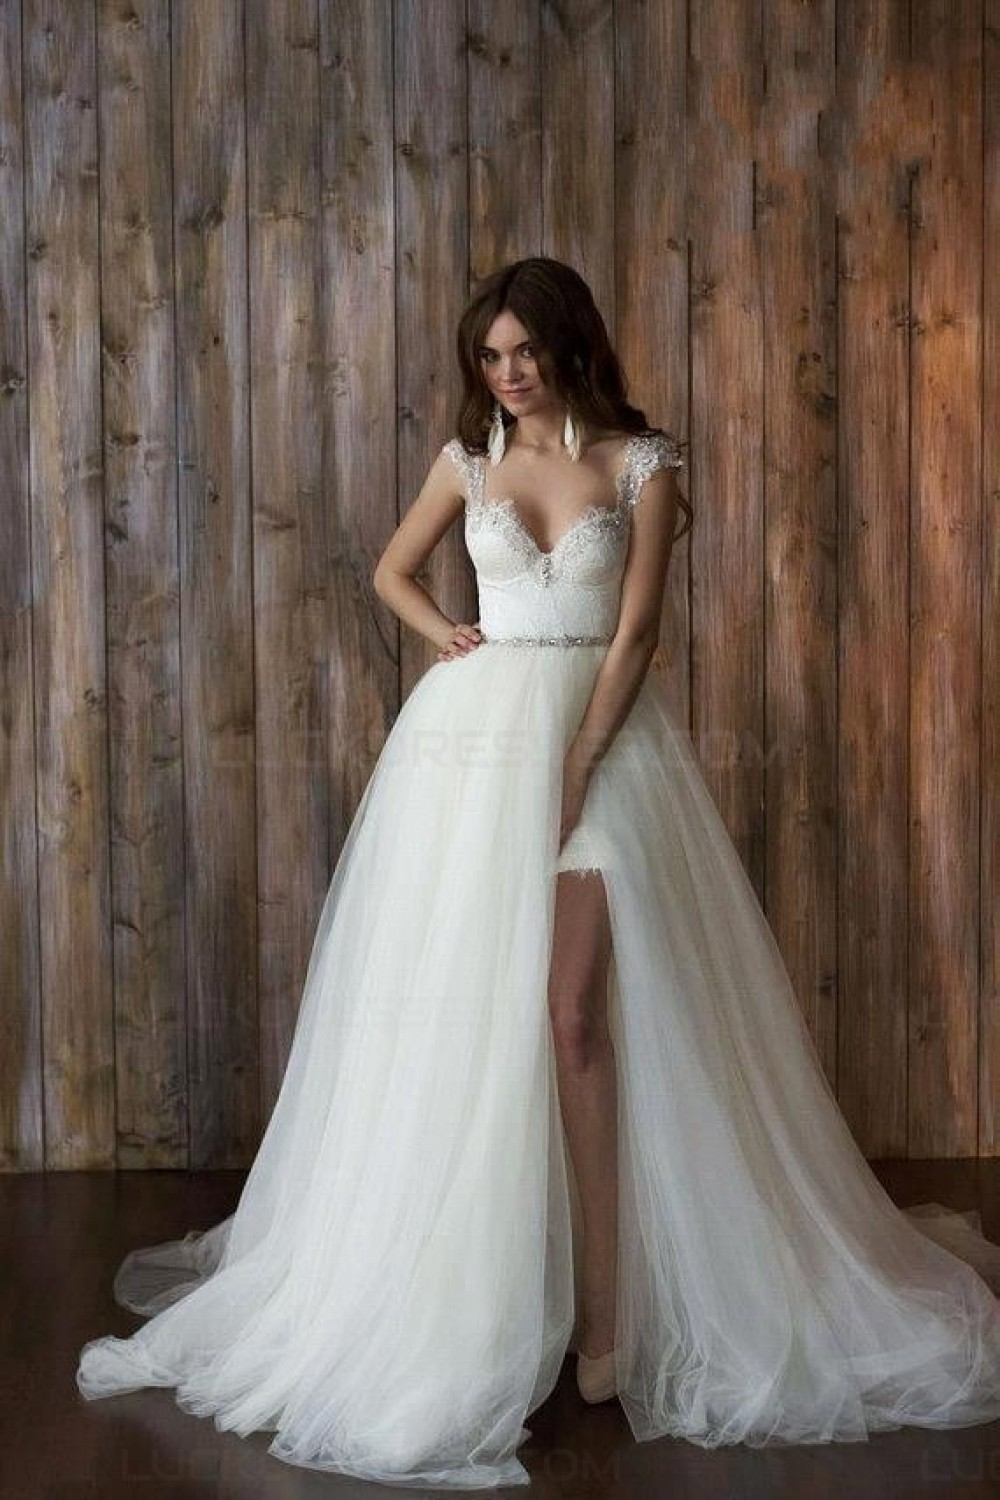 Sheath/Column Sweetheart Sleeveless Lace Wedding Dress